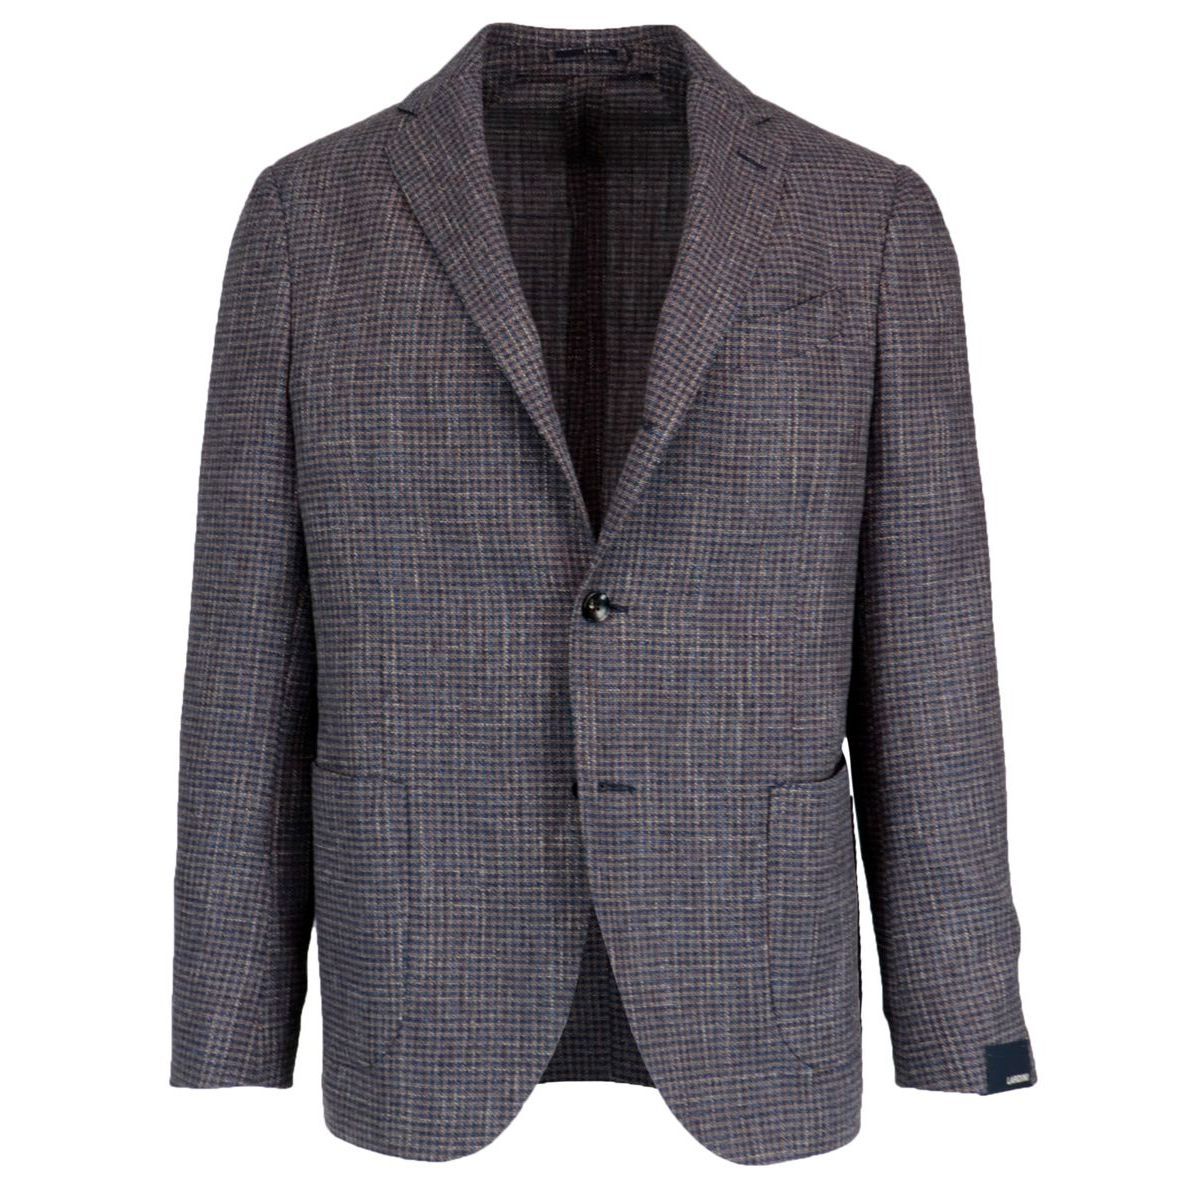 Wool and cotton jacket with patch pockets Royal Lardini